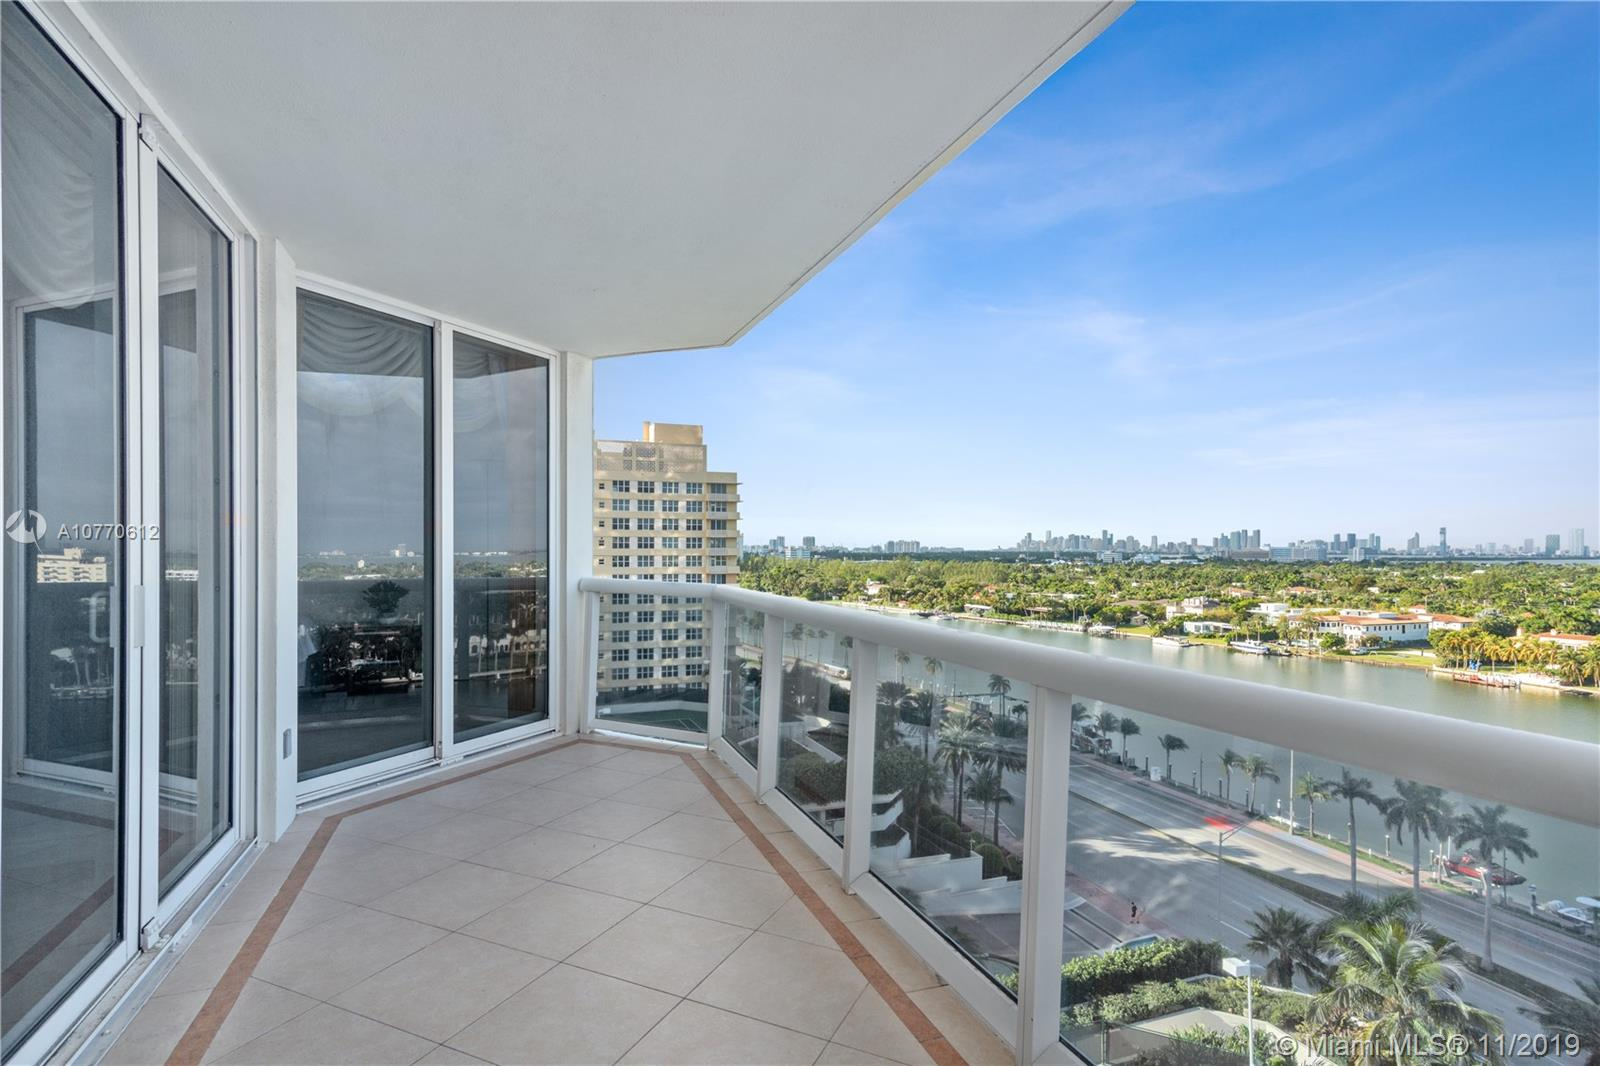 As you enter into this large one bedroom + den and 2 full baths residence you will be greeted with beautiful views of Bay, Intracoastal & City. Spacious living area, large terrace, Floor to ceiling glass windows. Expansive master suite w/large master bath & walk in closet. With its unparalleled location, the Blue & Green Diamond is one of Miami Beach's most sought after addresses. Enjoy luxury beachfront living with five-star resort-style amenities including 24-hour security and valet, lighted tennis court, large pool, spa, fitness center equipped with the latest technology, poolside café and more.